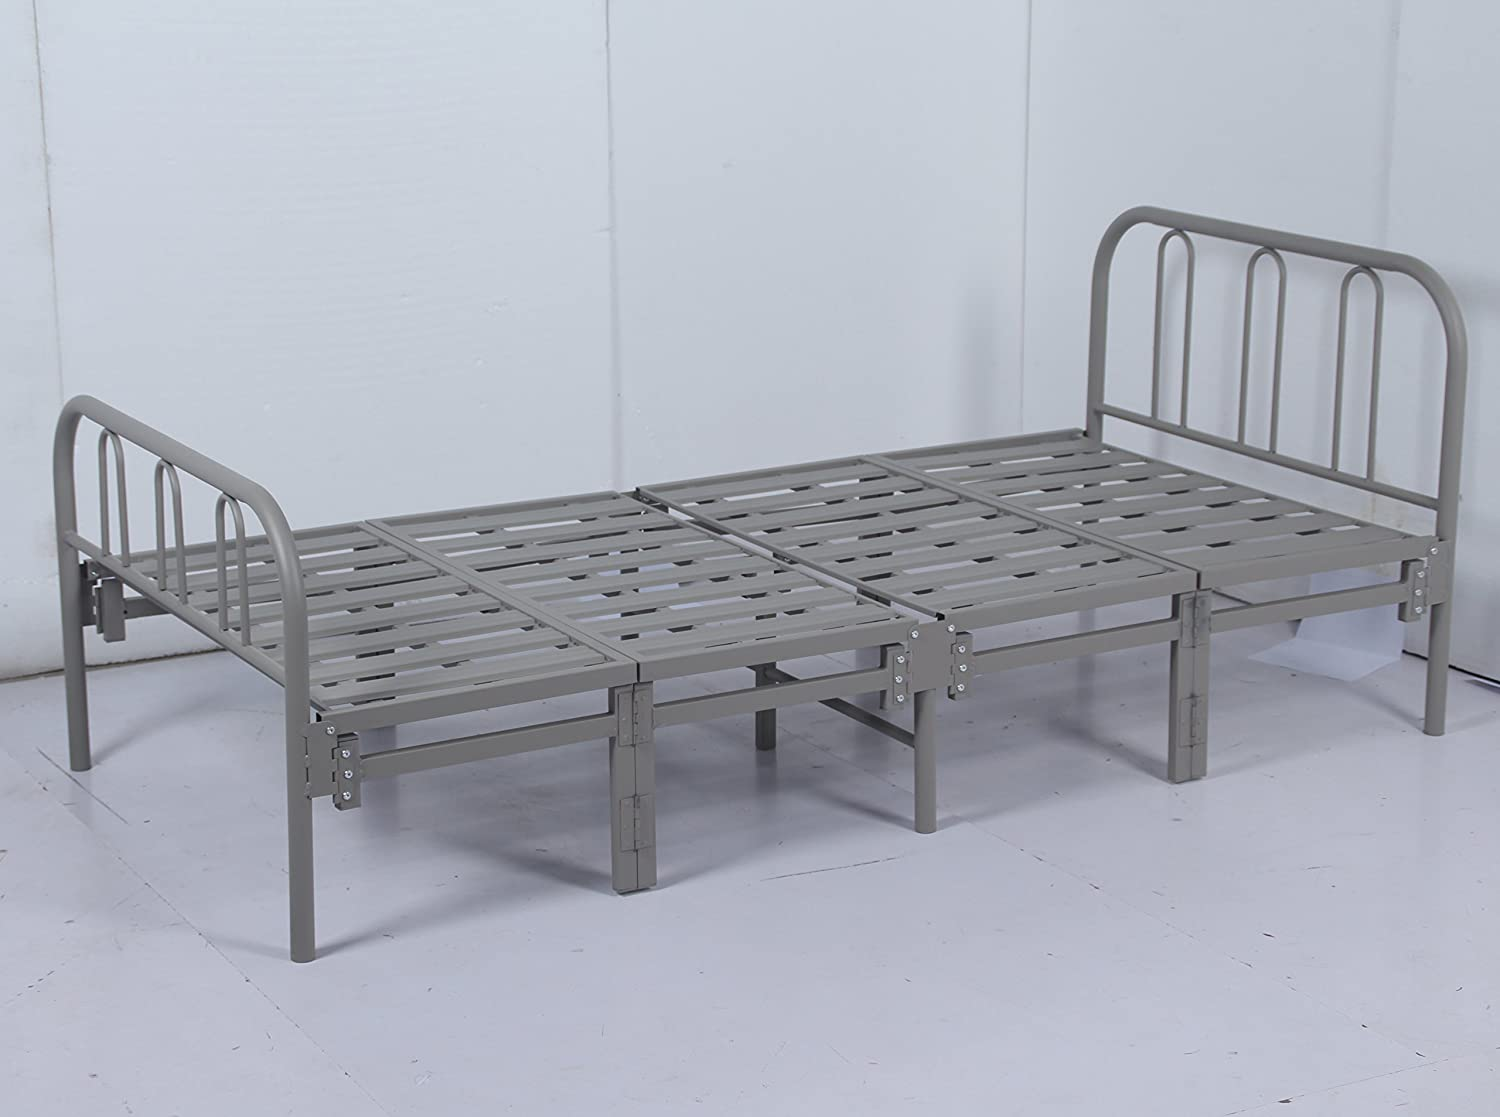 Pleasant Homejoy Prada 3 Ft Contract Heavy Duty Folding Metal Bed Frame In Light Grey Colour Onthecornerstone Fun Painted Chair Ideas Images Onthecornerstoneorg